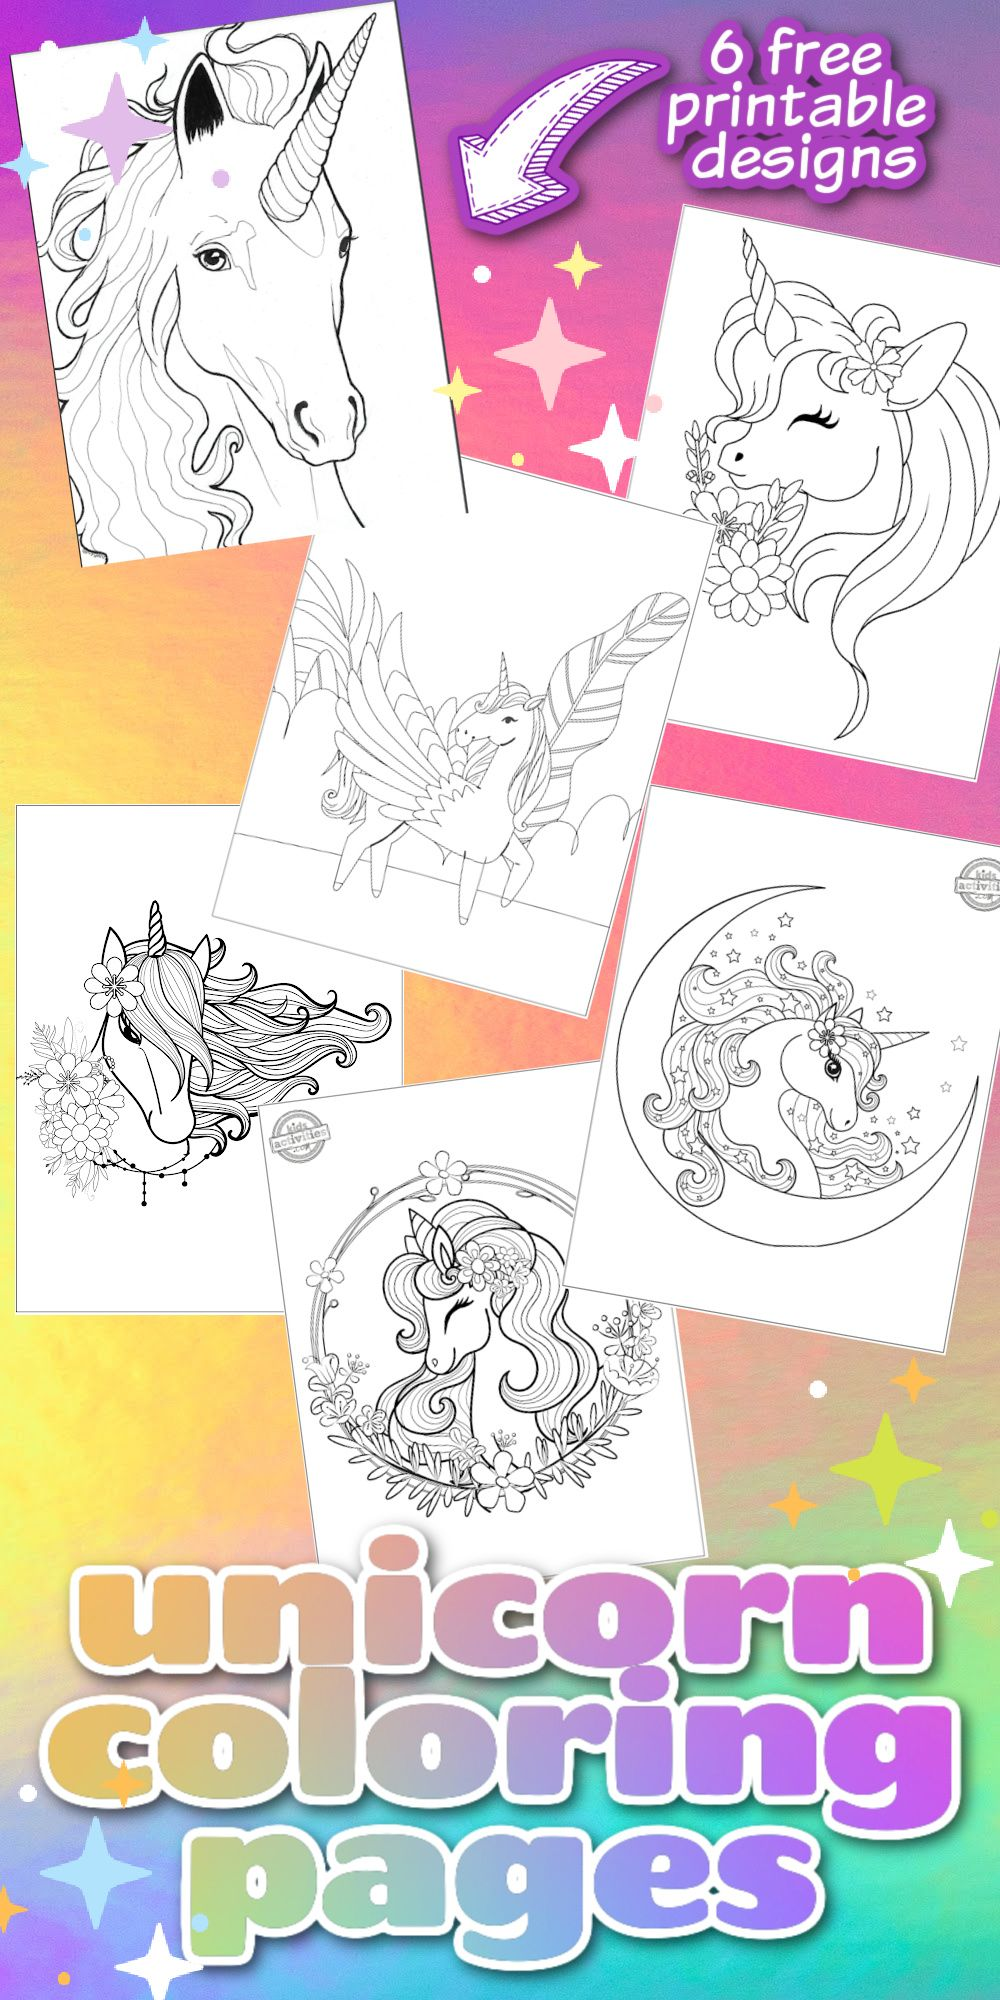 6 Amazing Unicorn Coloring Pages For Kids Free To Download Print In 2021 Unicorn Coloring Pages Coloring Pages Coloring Pages For Kids